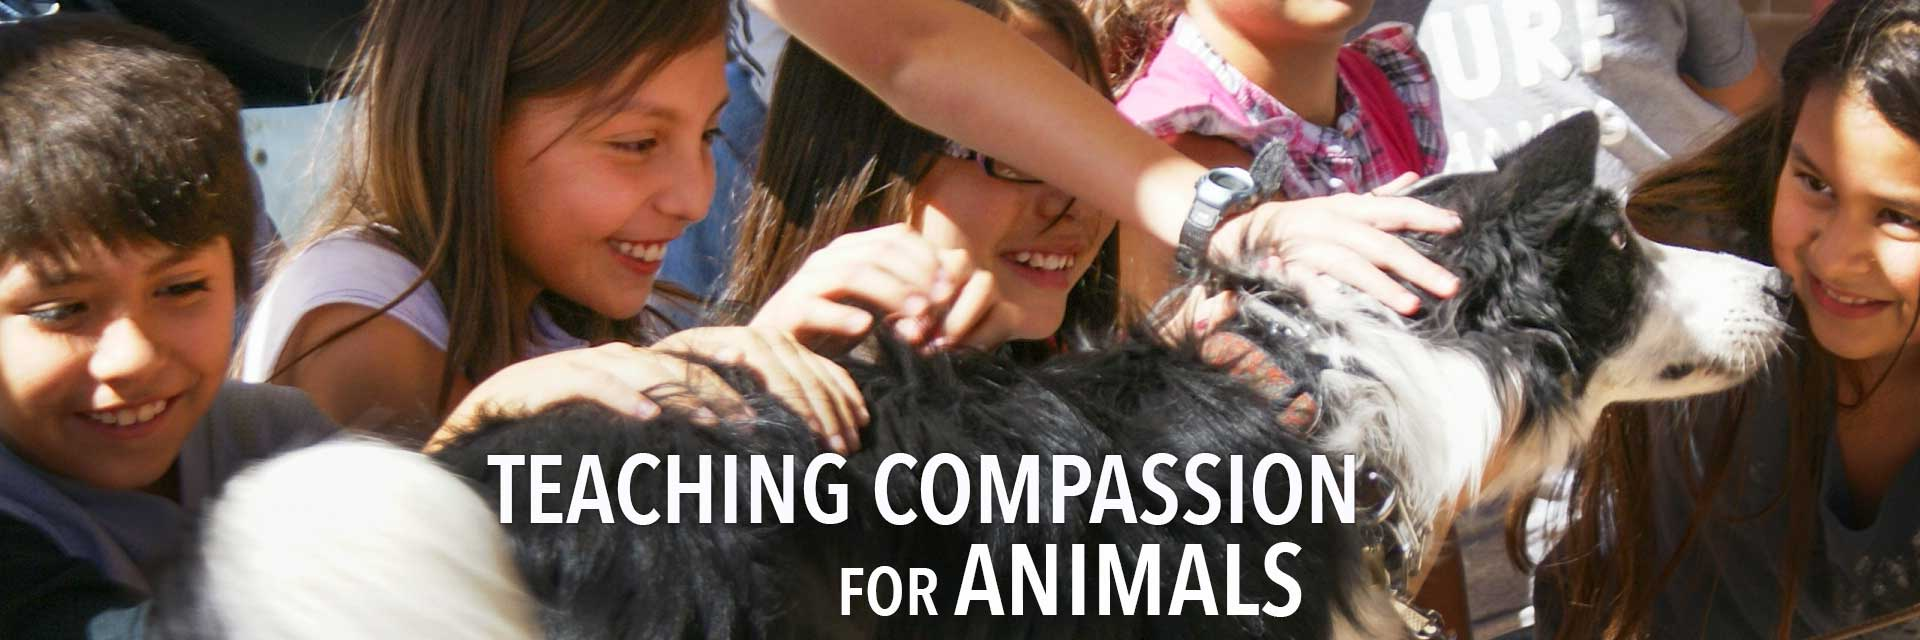 Teaching Compassion for Animals